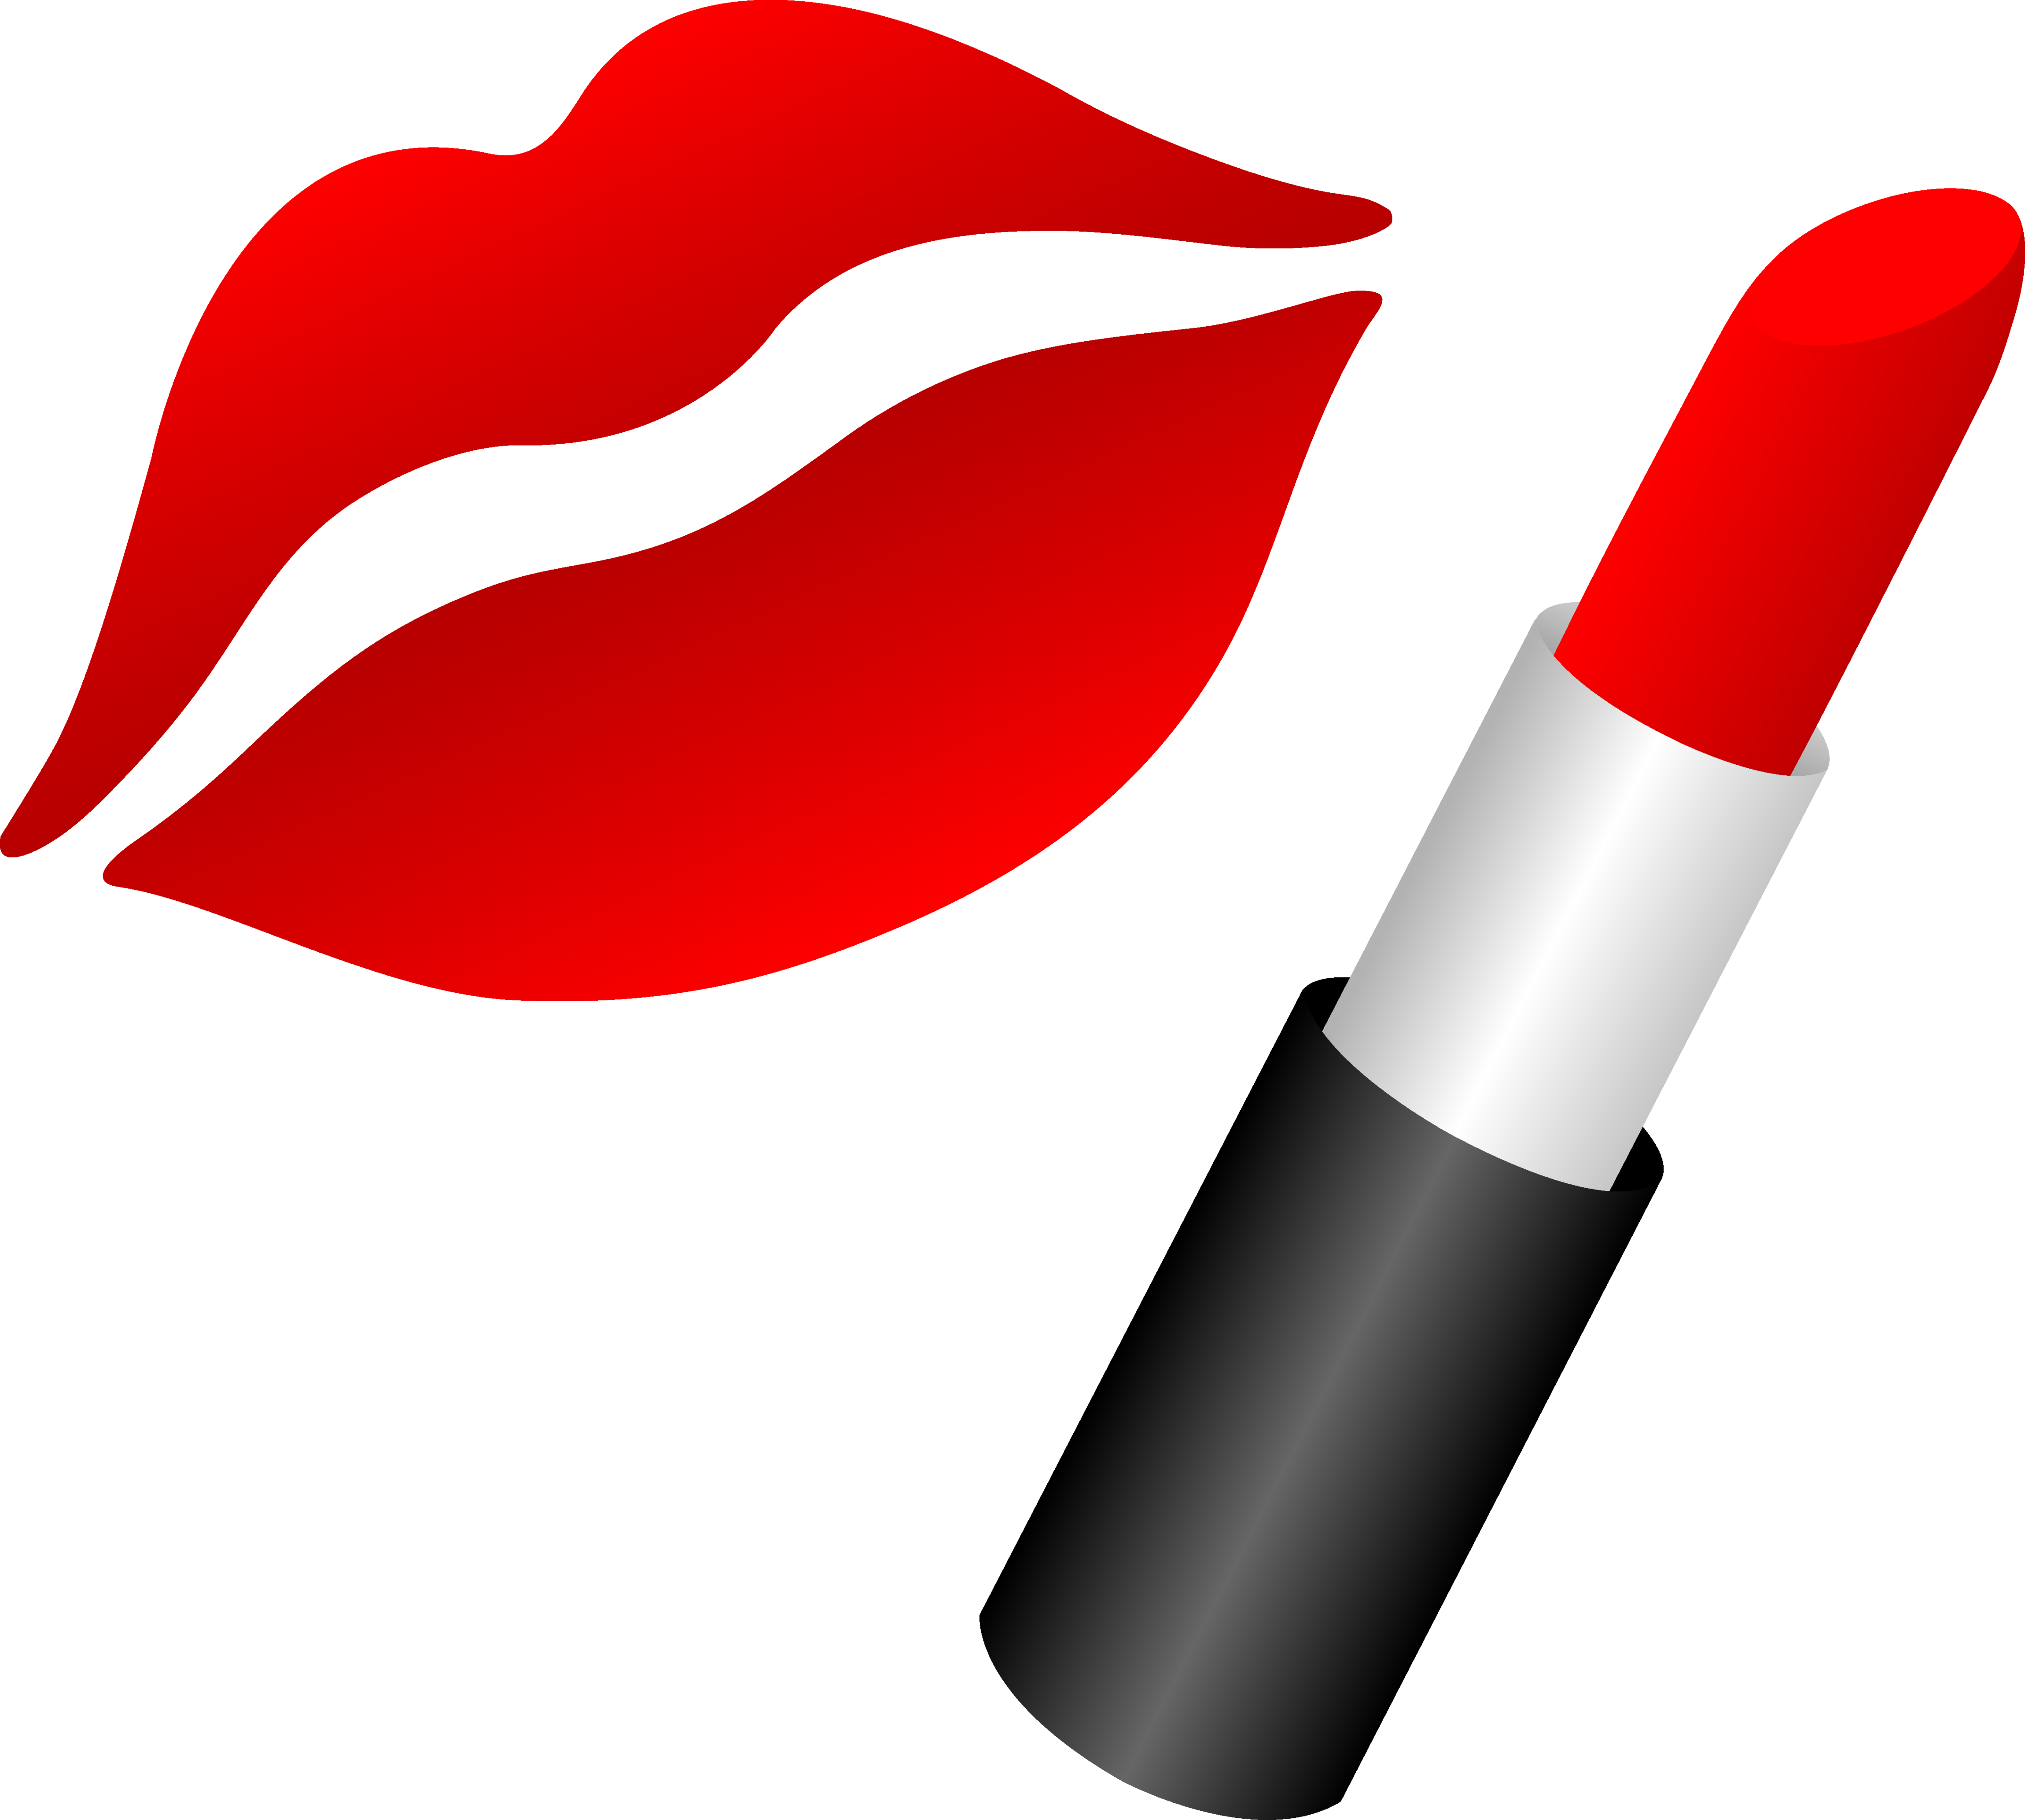 Lipstick clipart #4, Download drawings